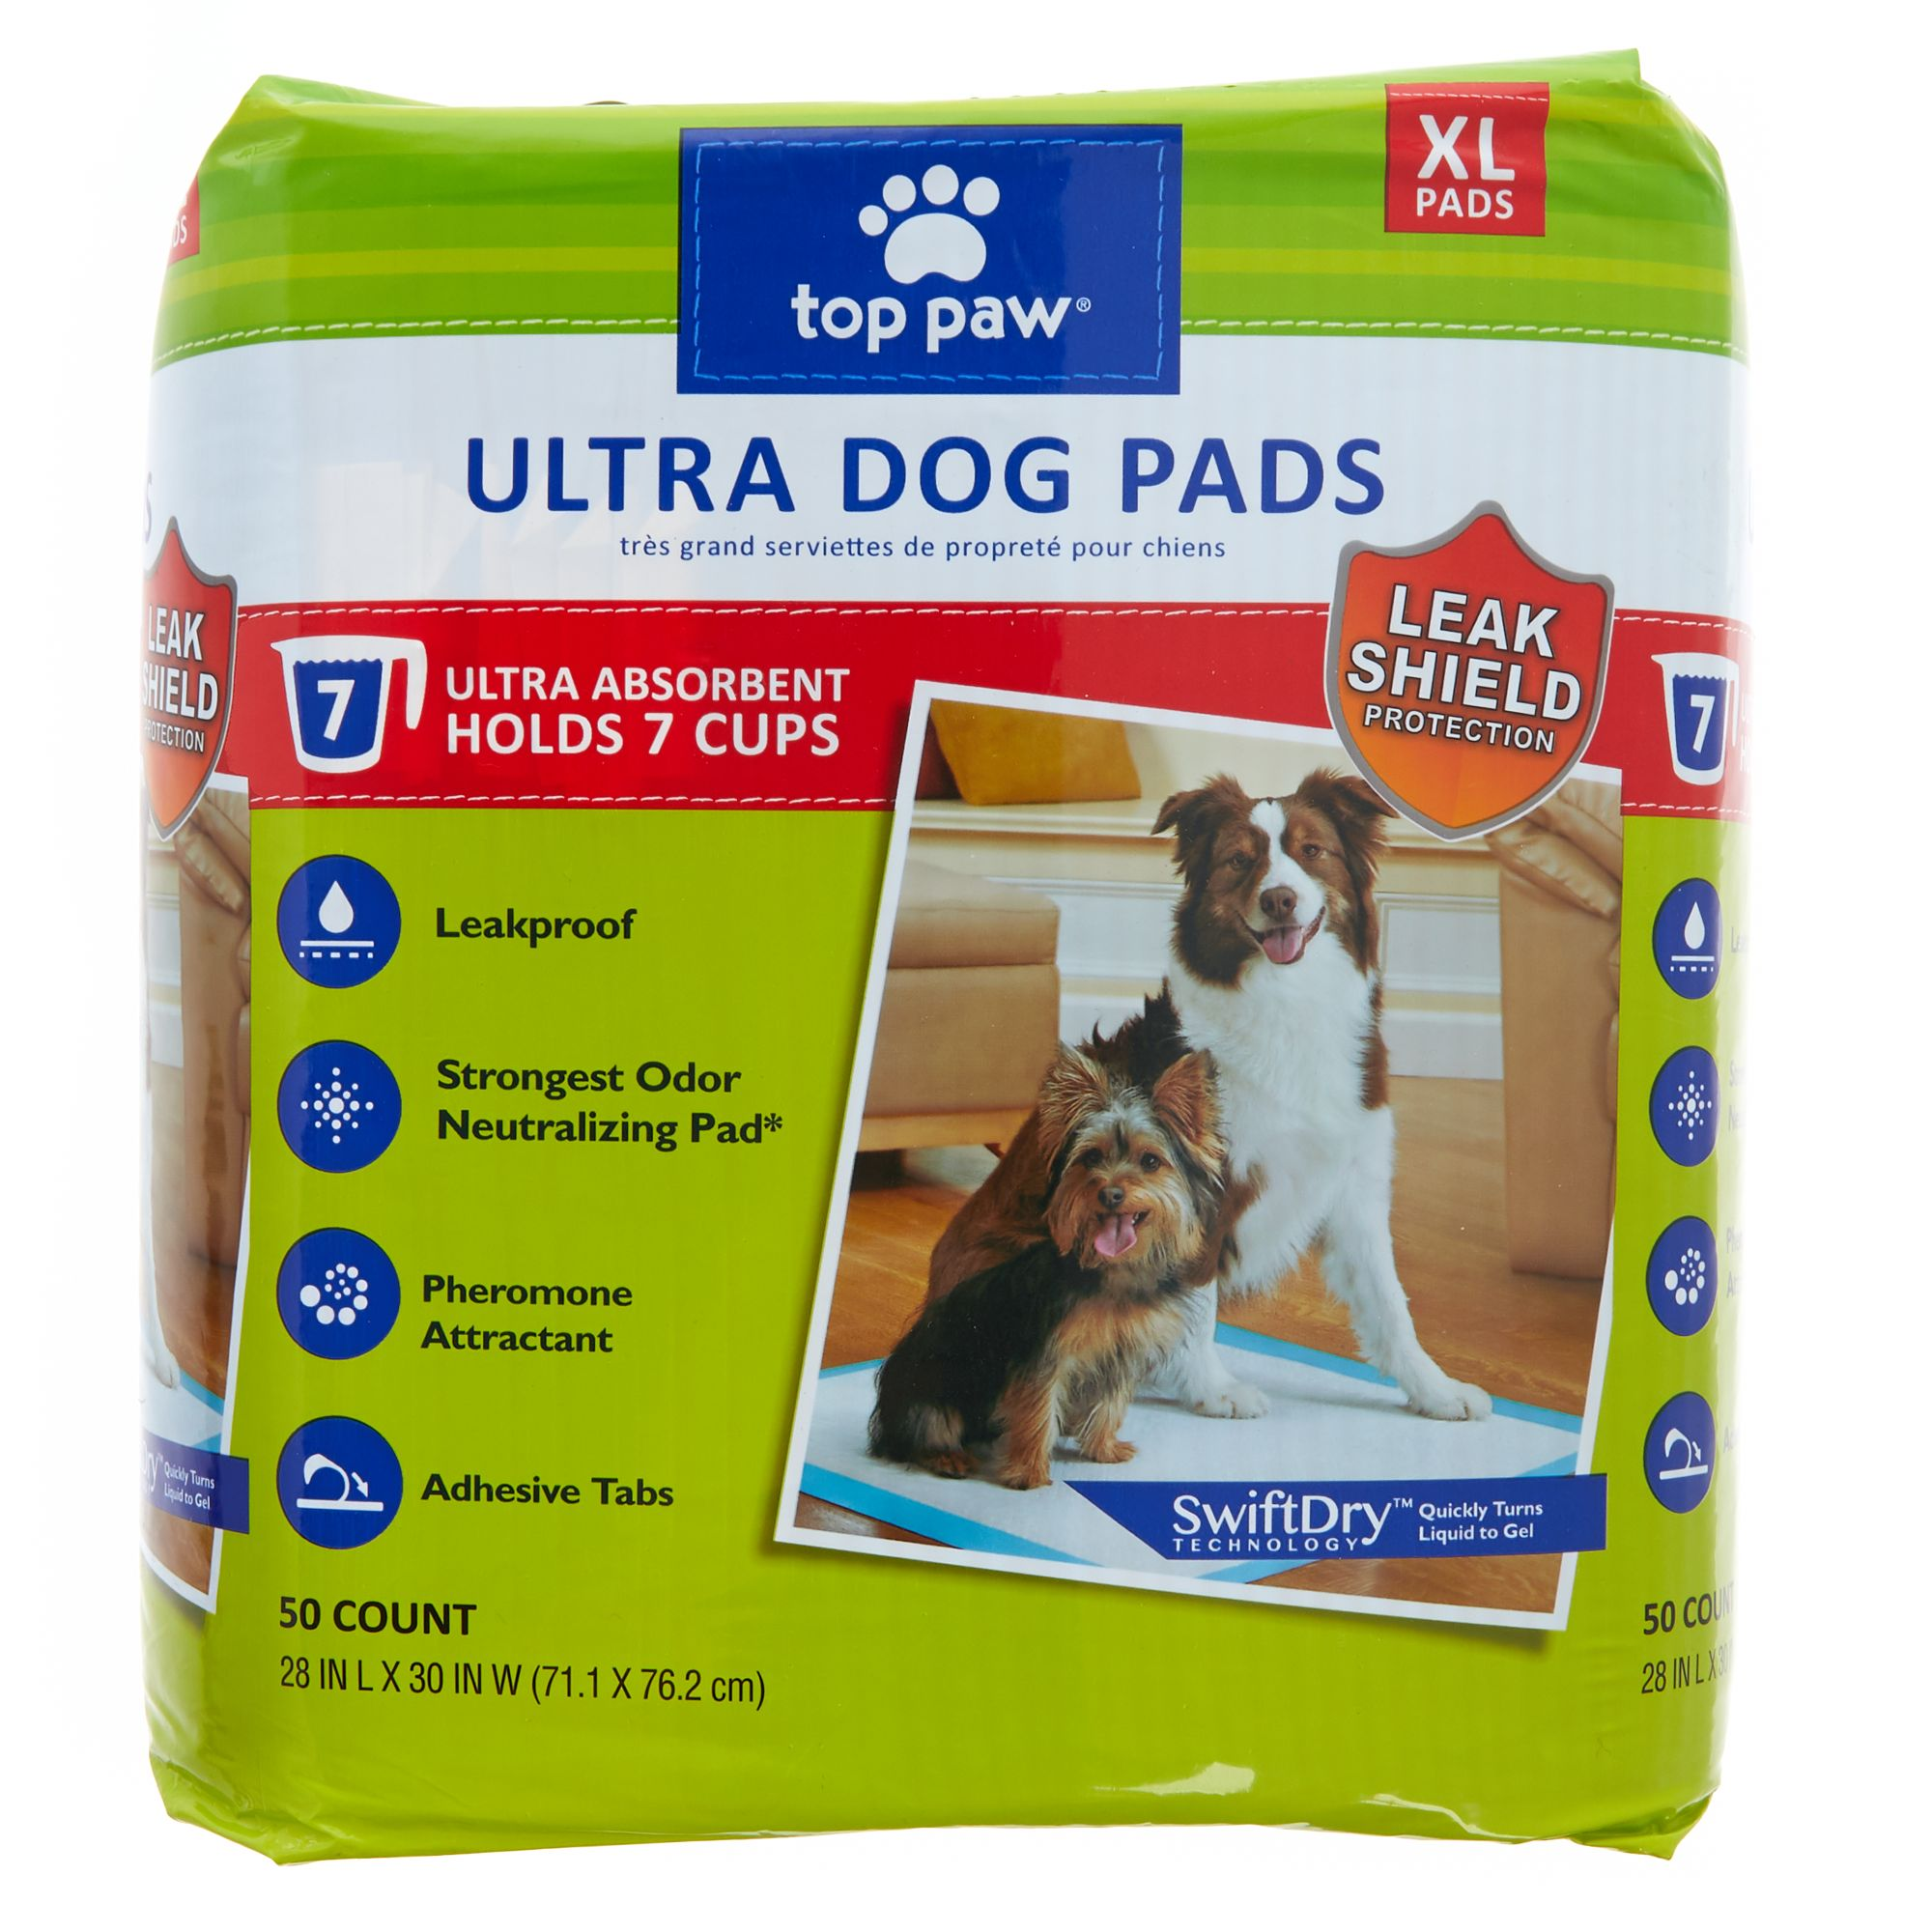 Top Paw X-Large Ultra Dog Pads size: 50 Count 5270595